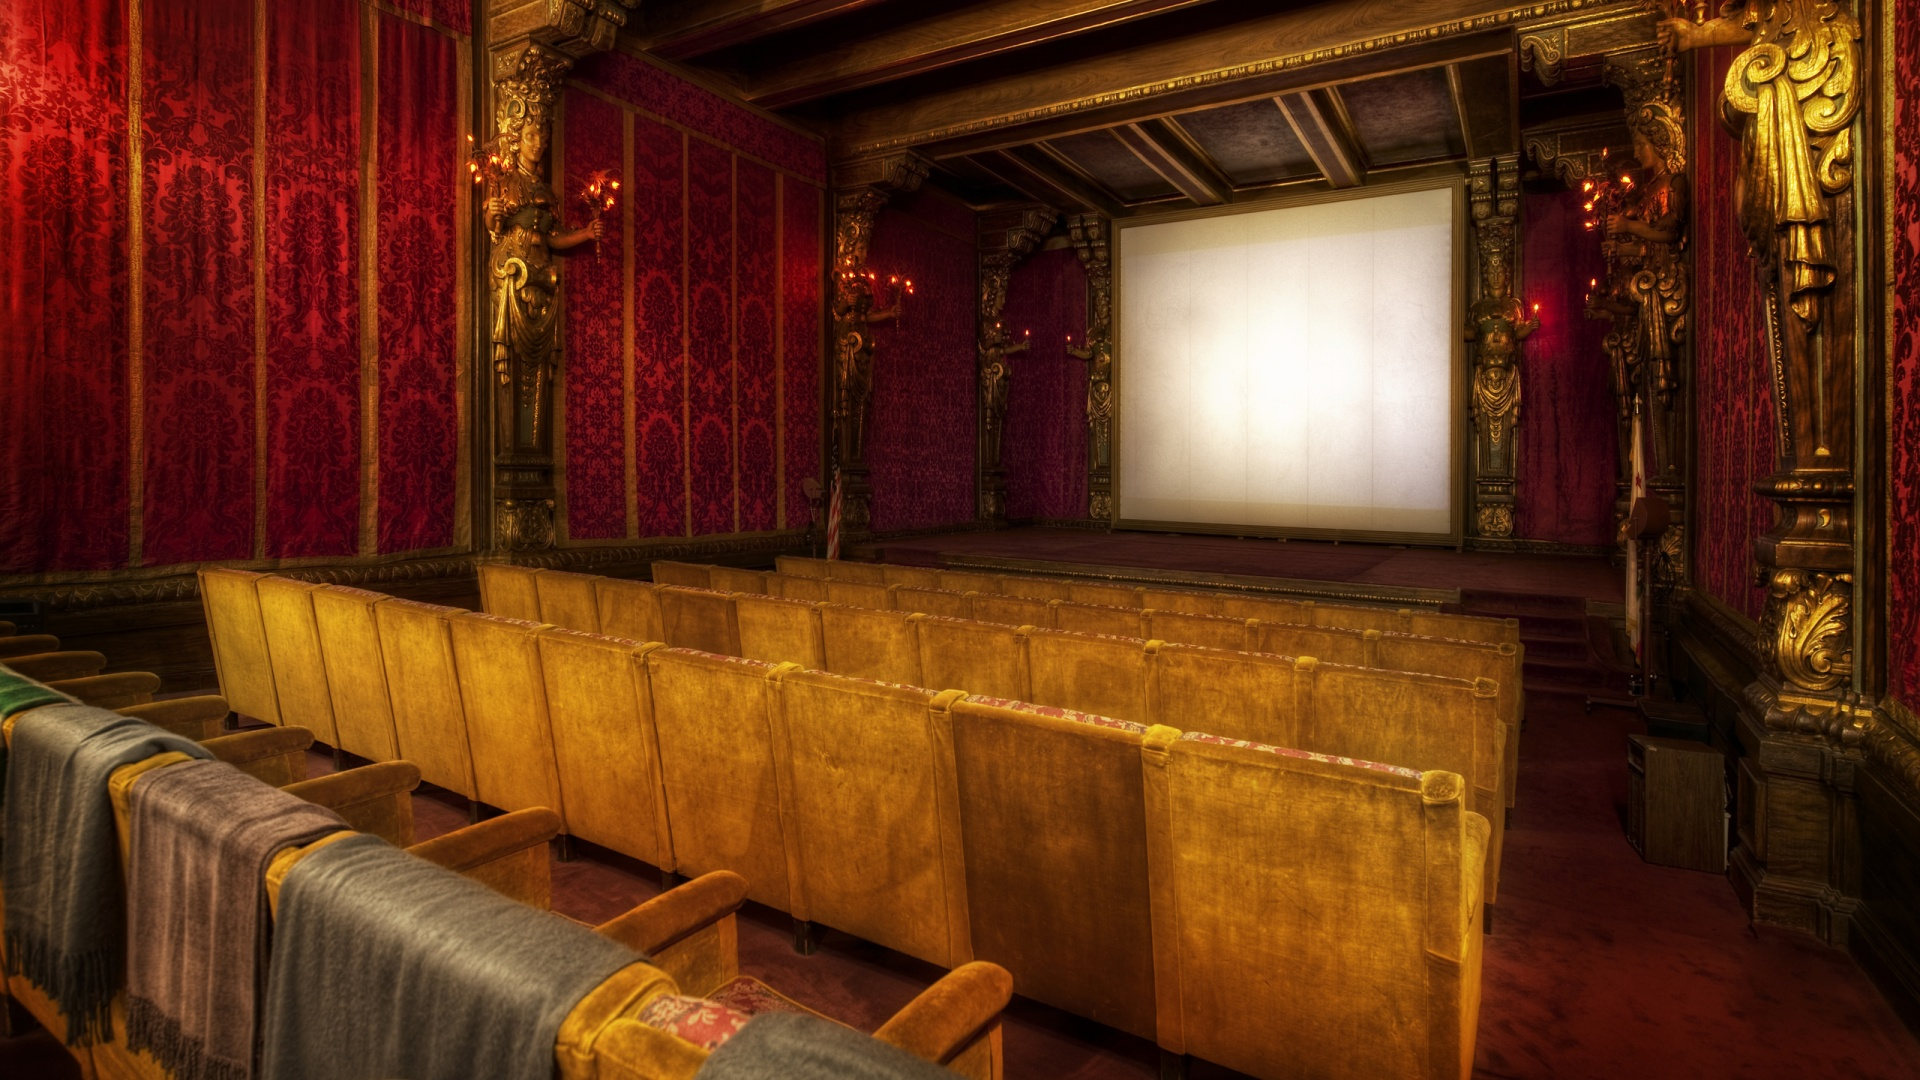 1920x1080 The Movie Theater At Hearst Desktop Wallpapers